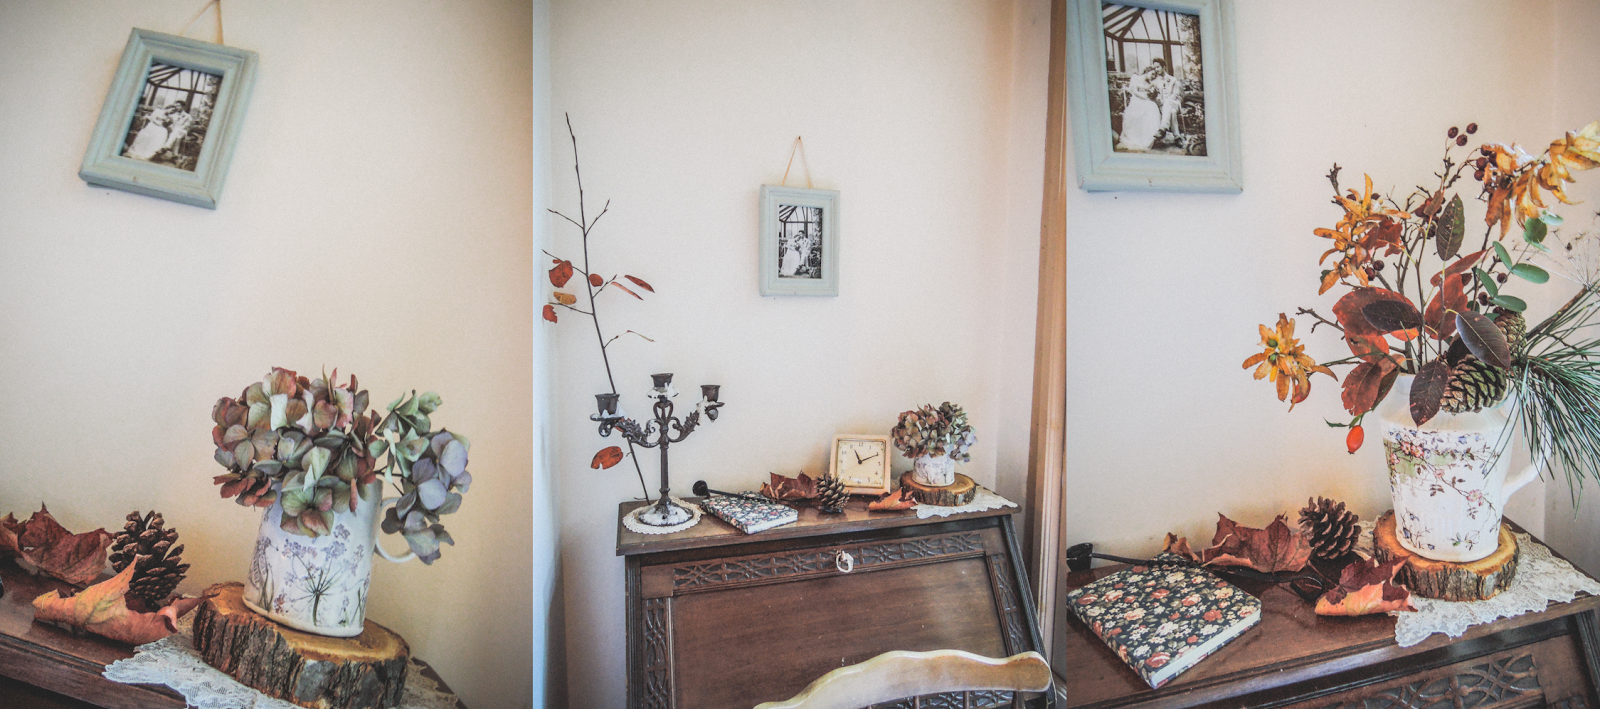 Decorating with autumn